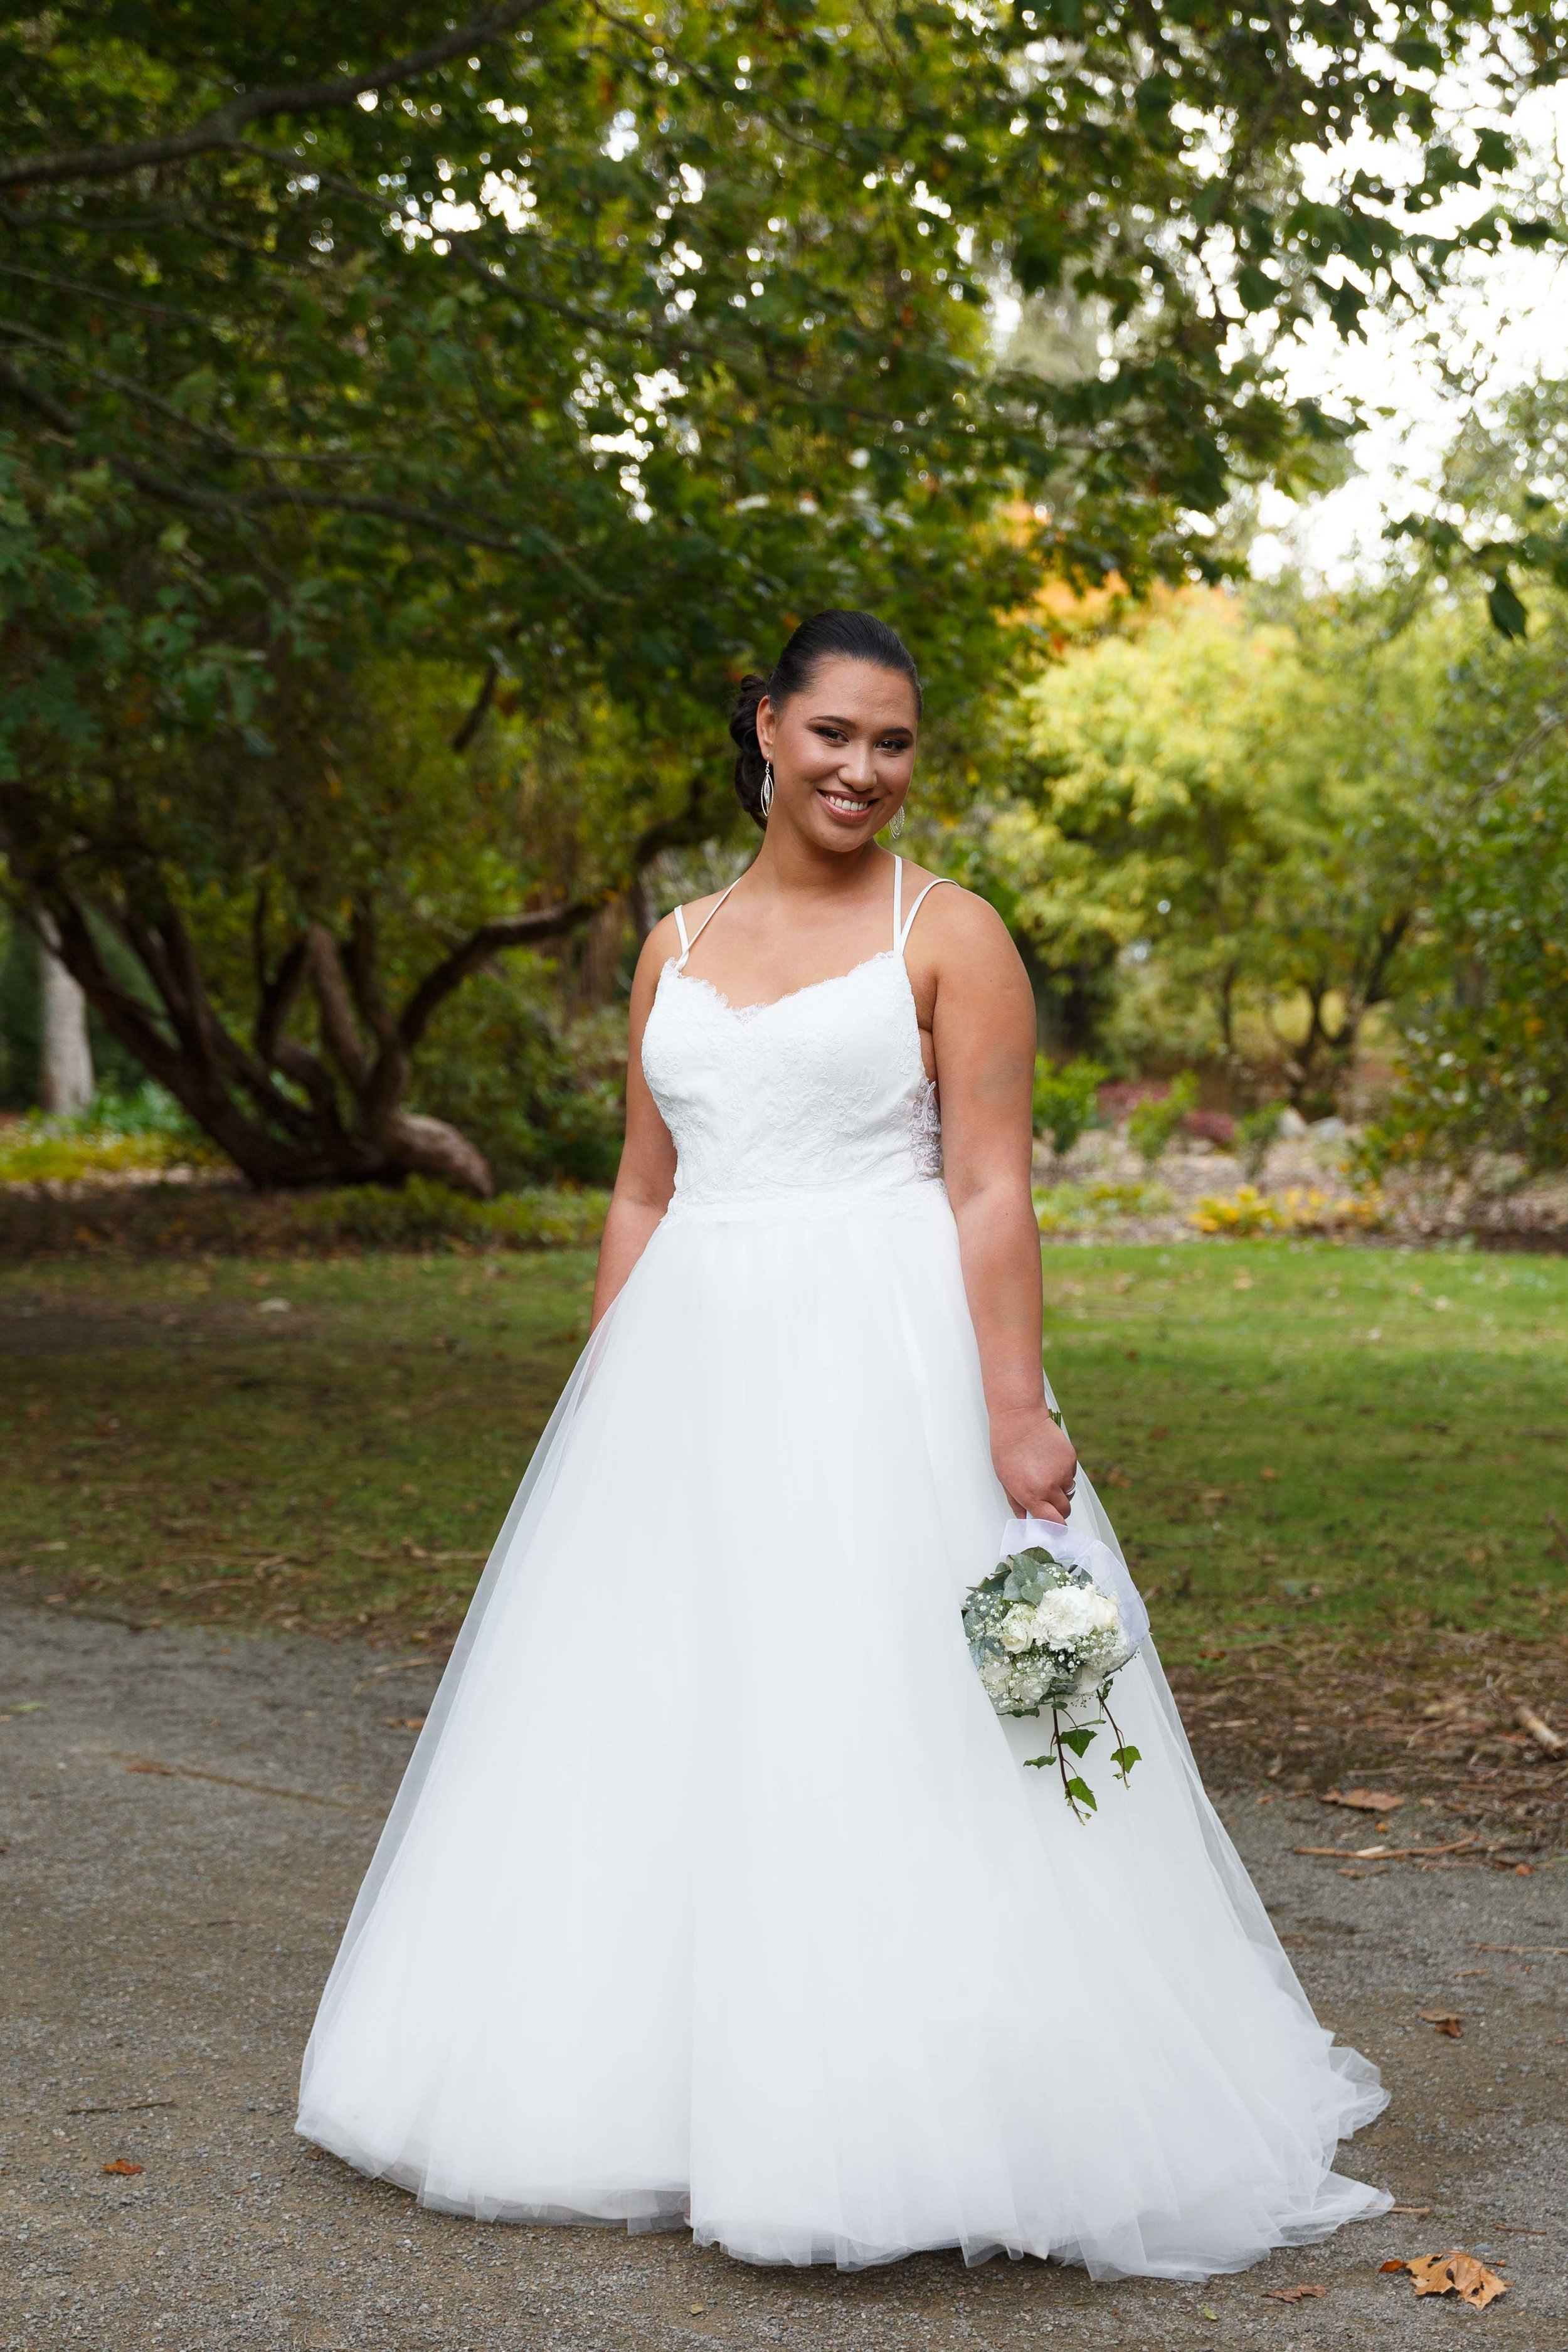 Highight-wedding-photography-the-chalet-palmerston-north-new-zealand-63.jpg